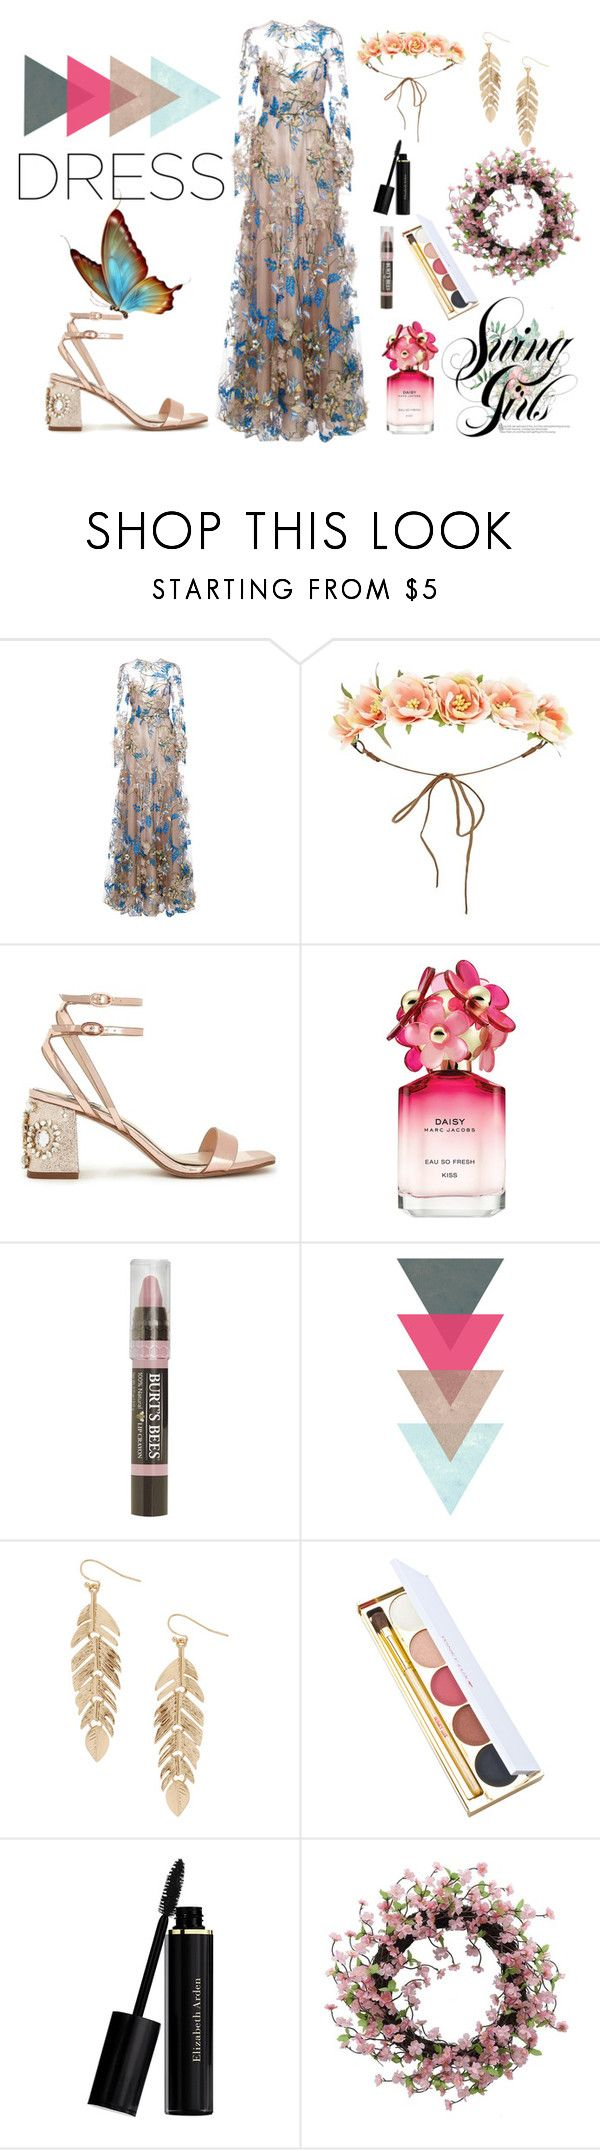 """Butterfly"" by justmystylexally on Polyvore featuring moda, Forever 21, Miss Selfridge, Marc Jacobs, Burt's Bees, WALL, Humble Chic, Winky Lux ve Elizabeth Arden"